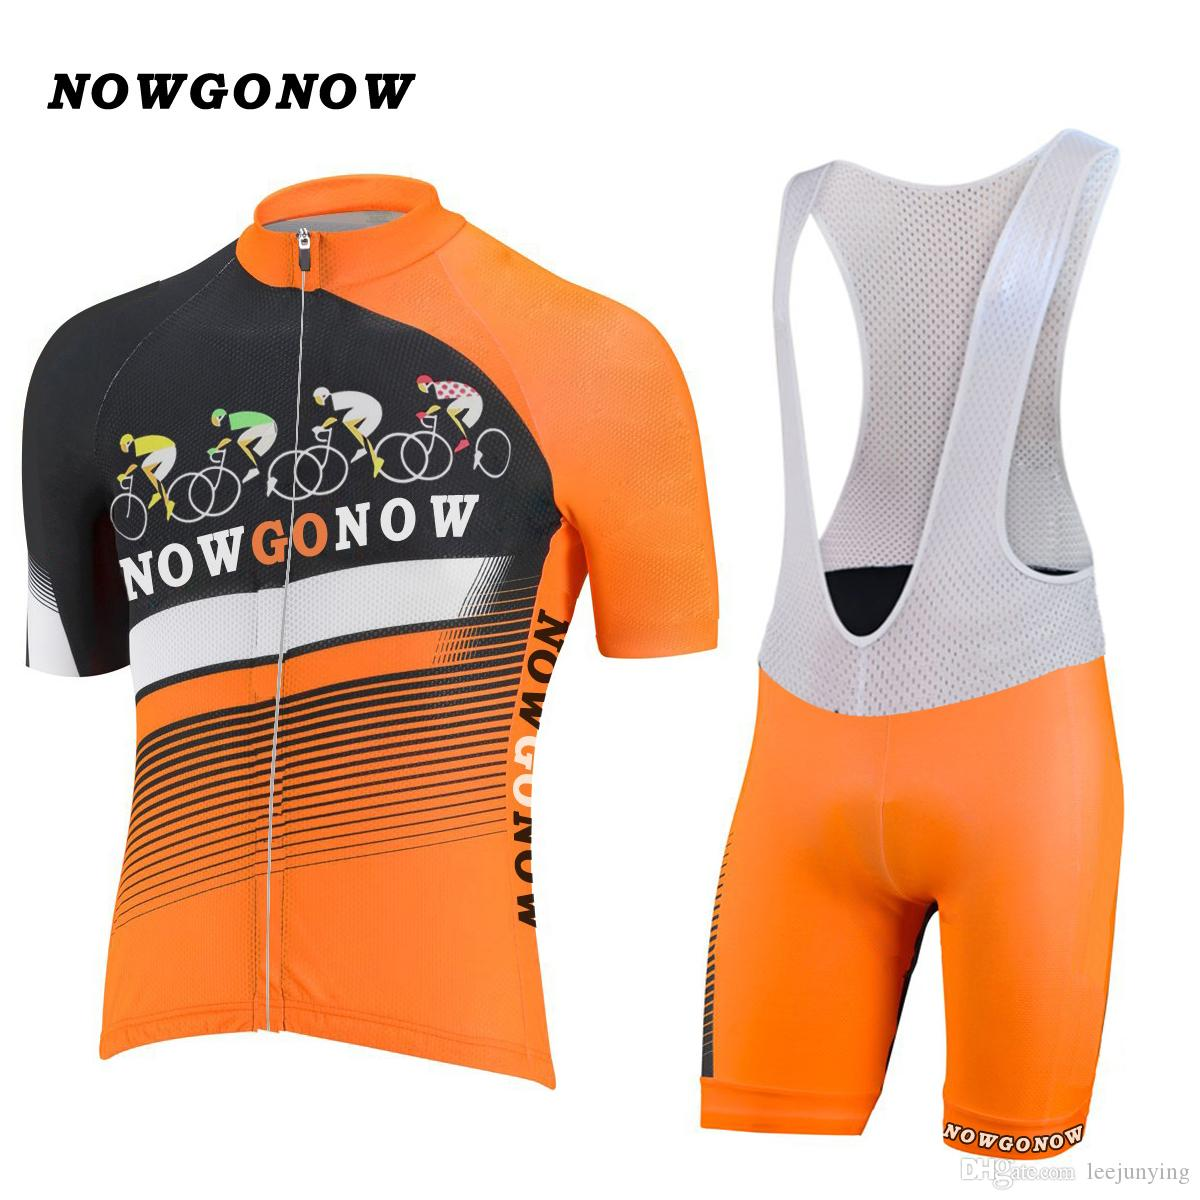 Men 2017 Cycling Jersey Classic Retro Orange Clothing Bike Wear Riding Mtb  Mountain Road Wear Custom NOWGONOW Bib Shorts Gel Pad Wholesale Cycling ... 67957f91b